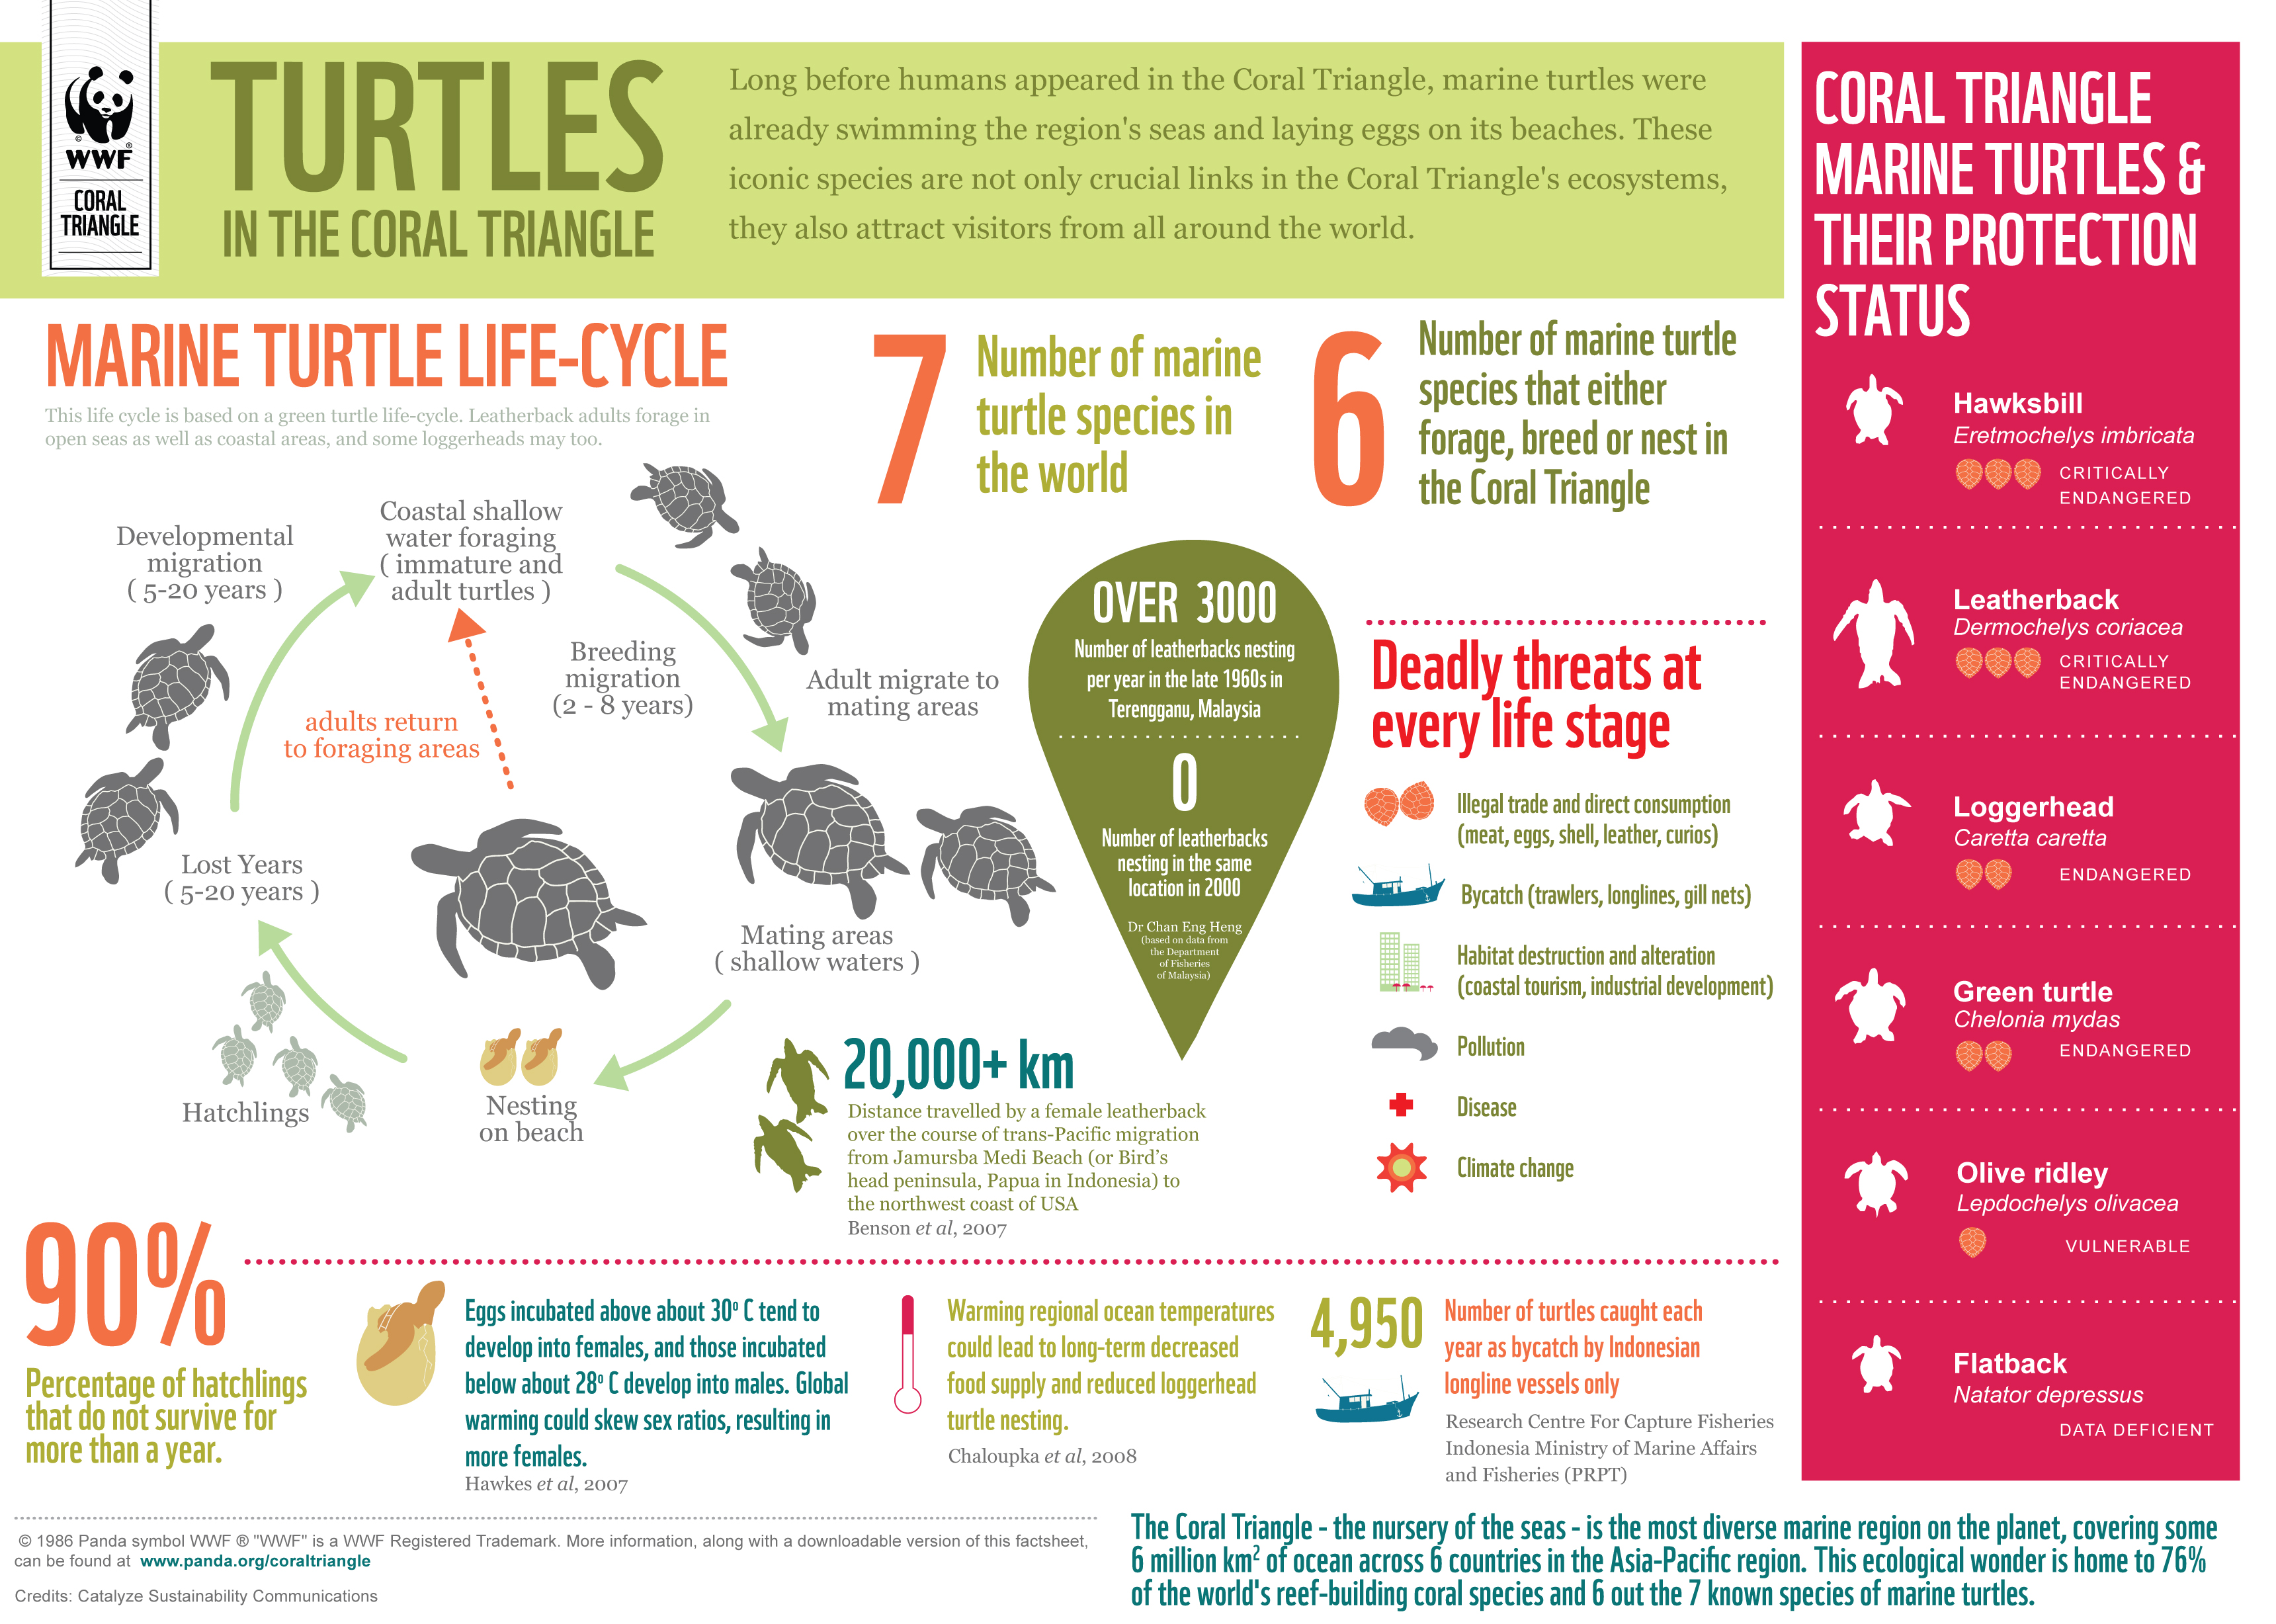 Coral Triangle Marine Turtles